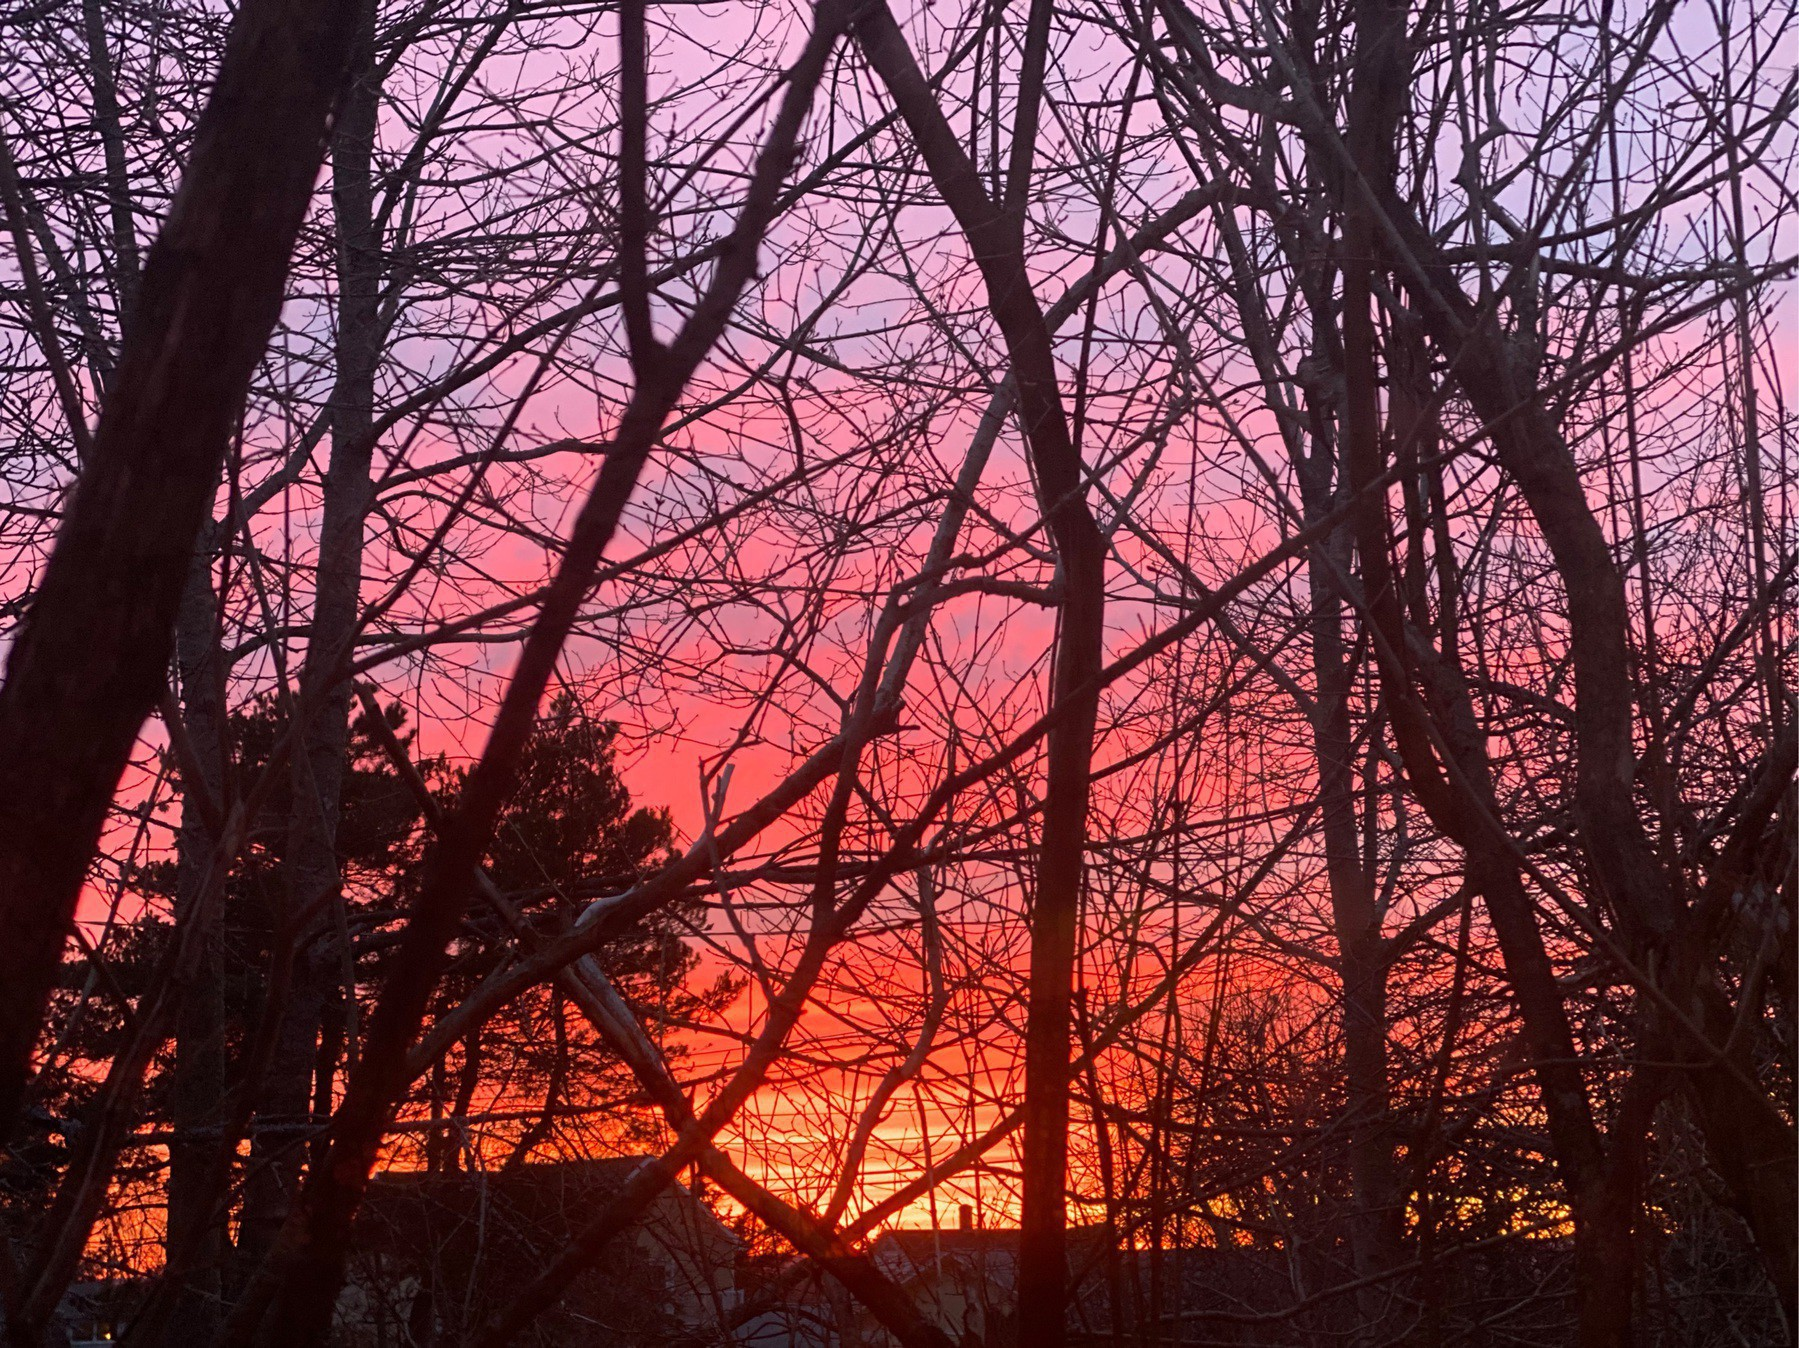 Sunset through branches.